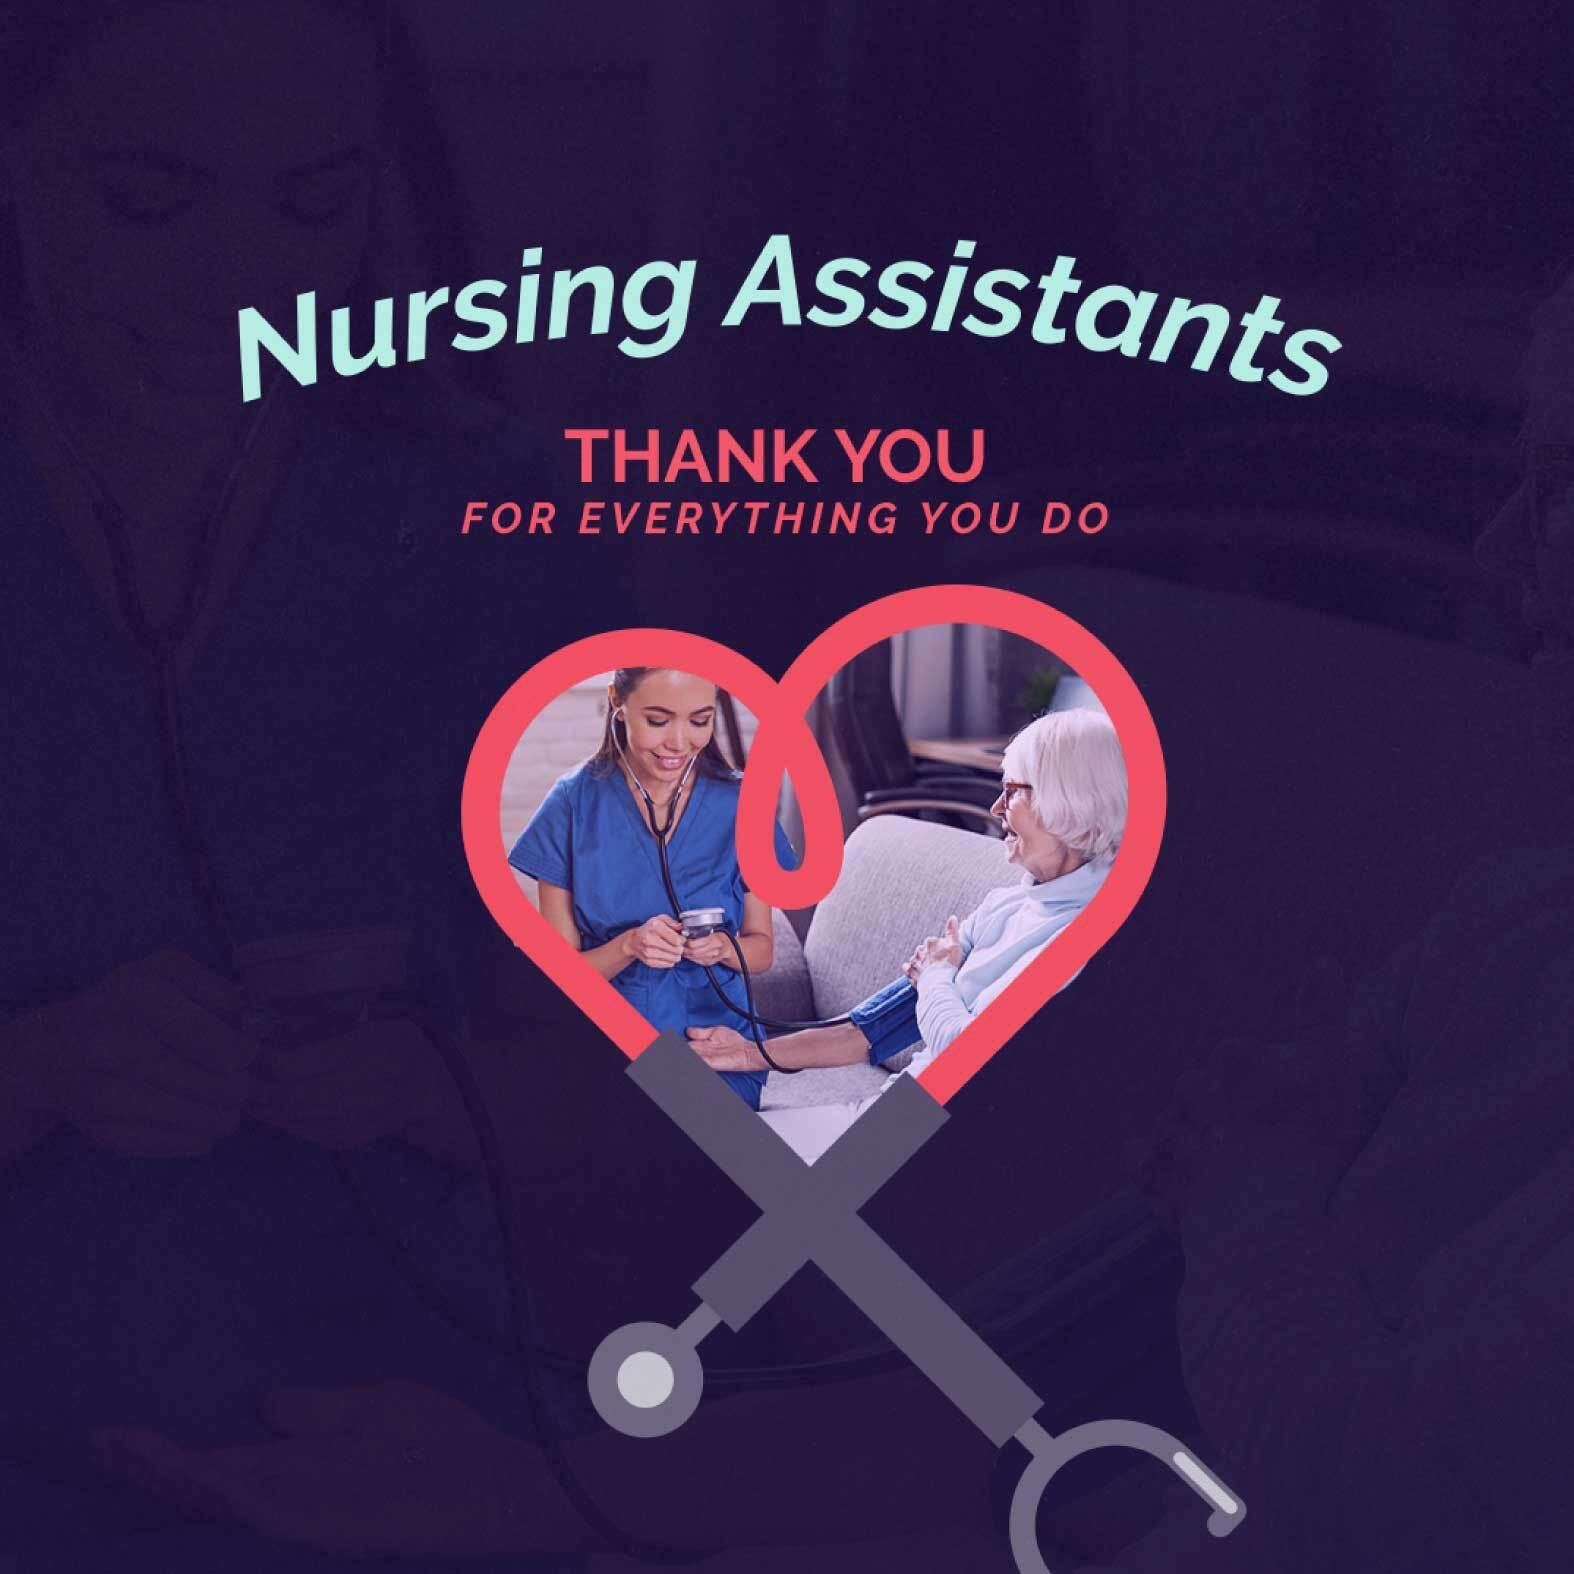 Nursing Assistants, thank you for everything you do